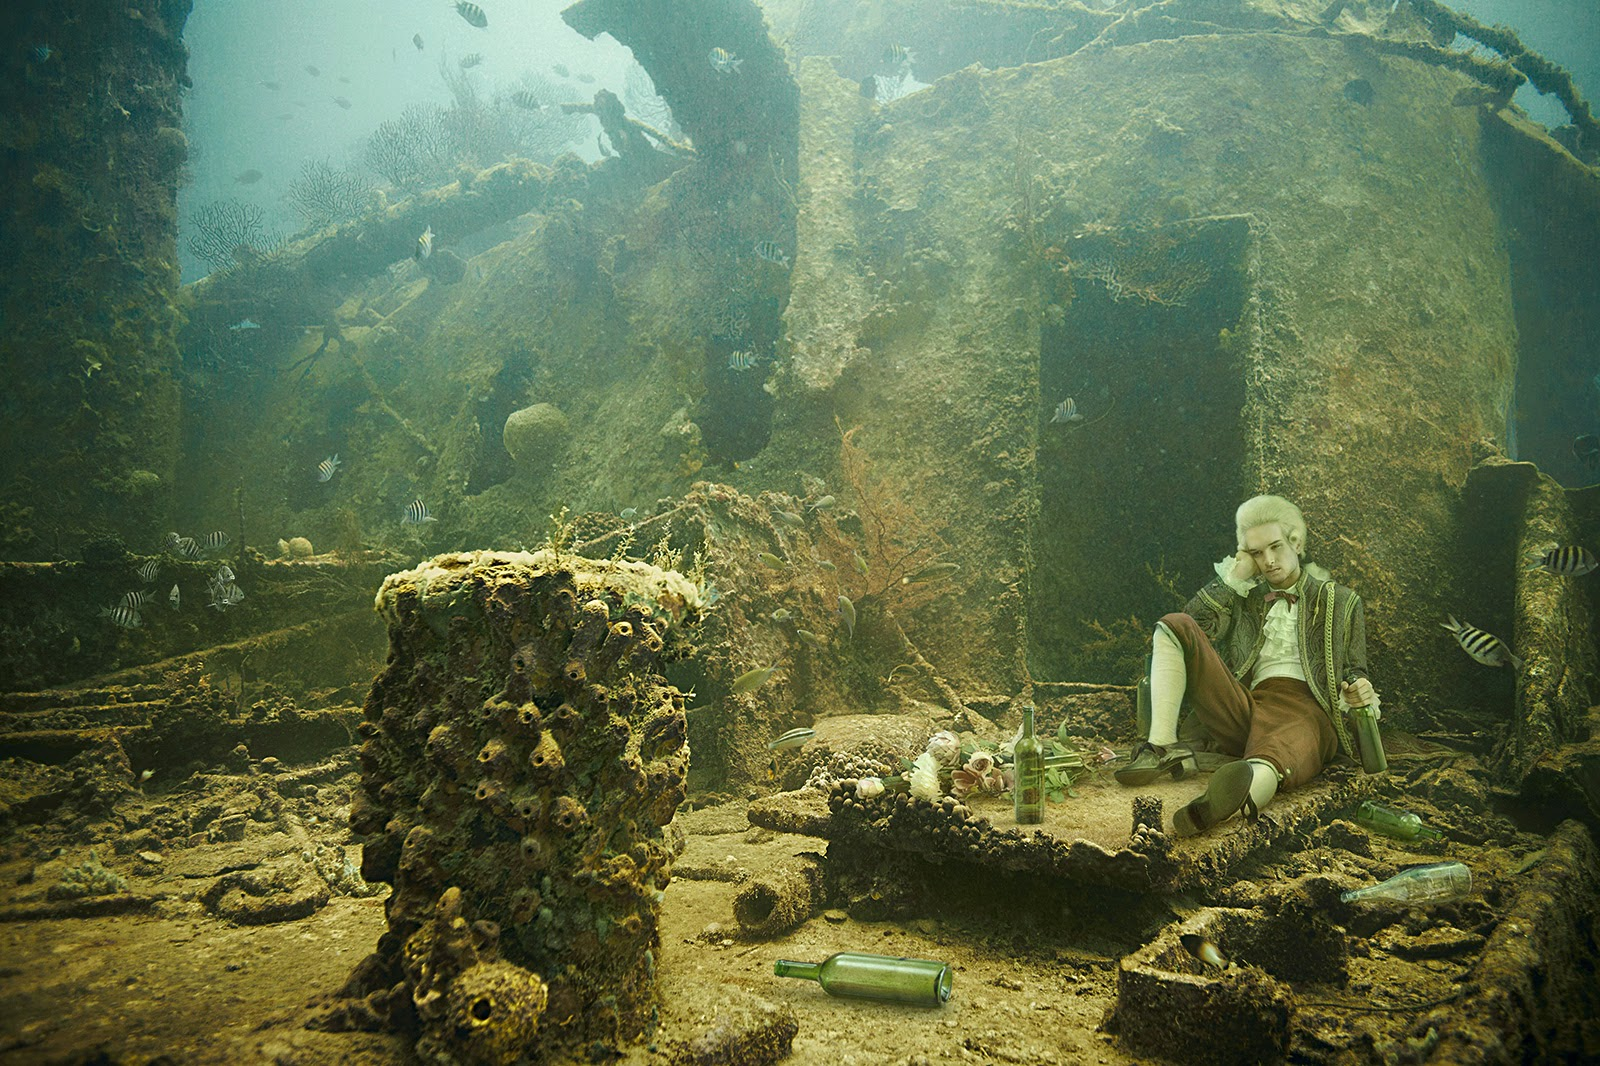 03-Andreas-Franke-Surreal-Artificial-Reef-Photography-www-designstack-co